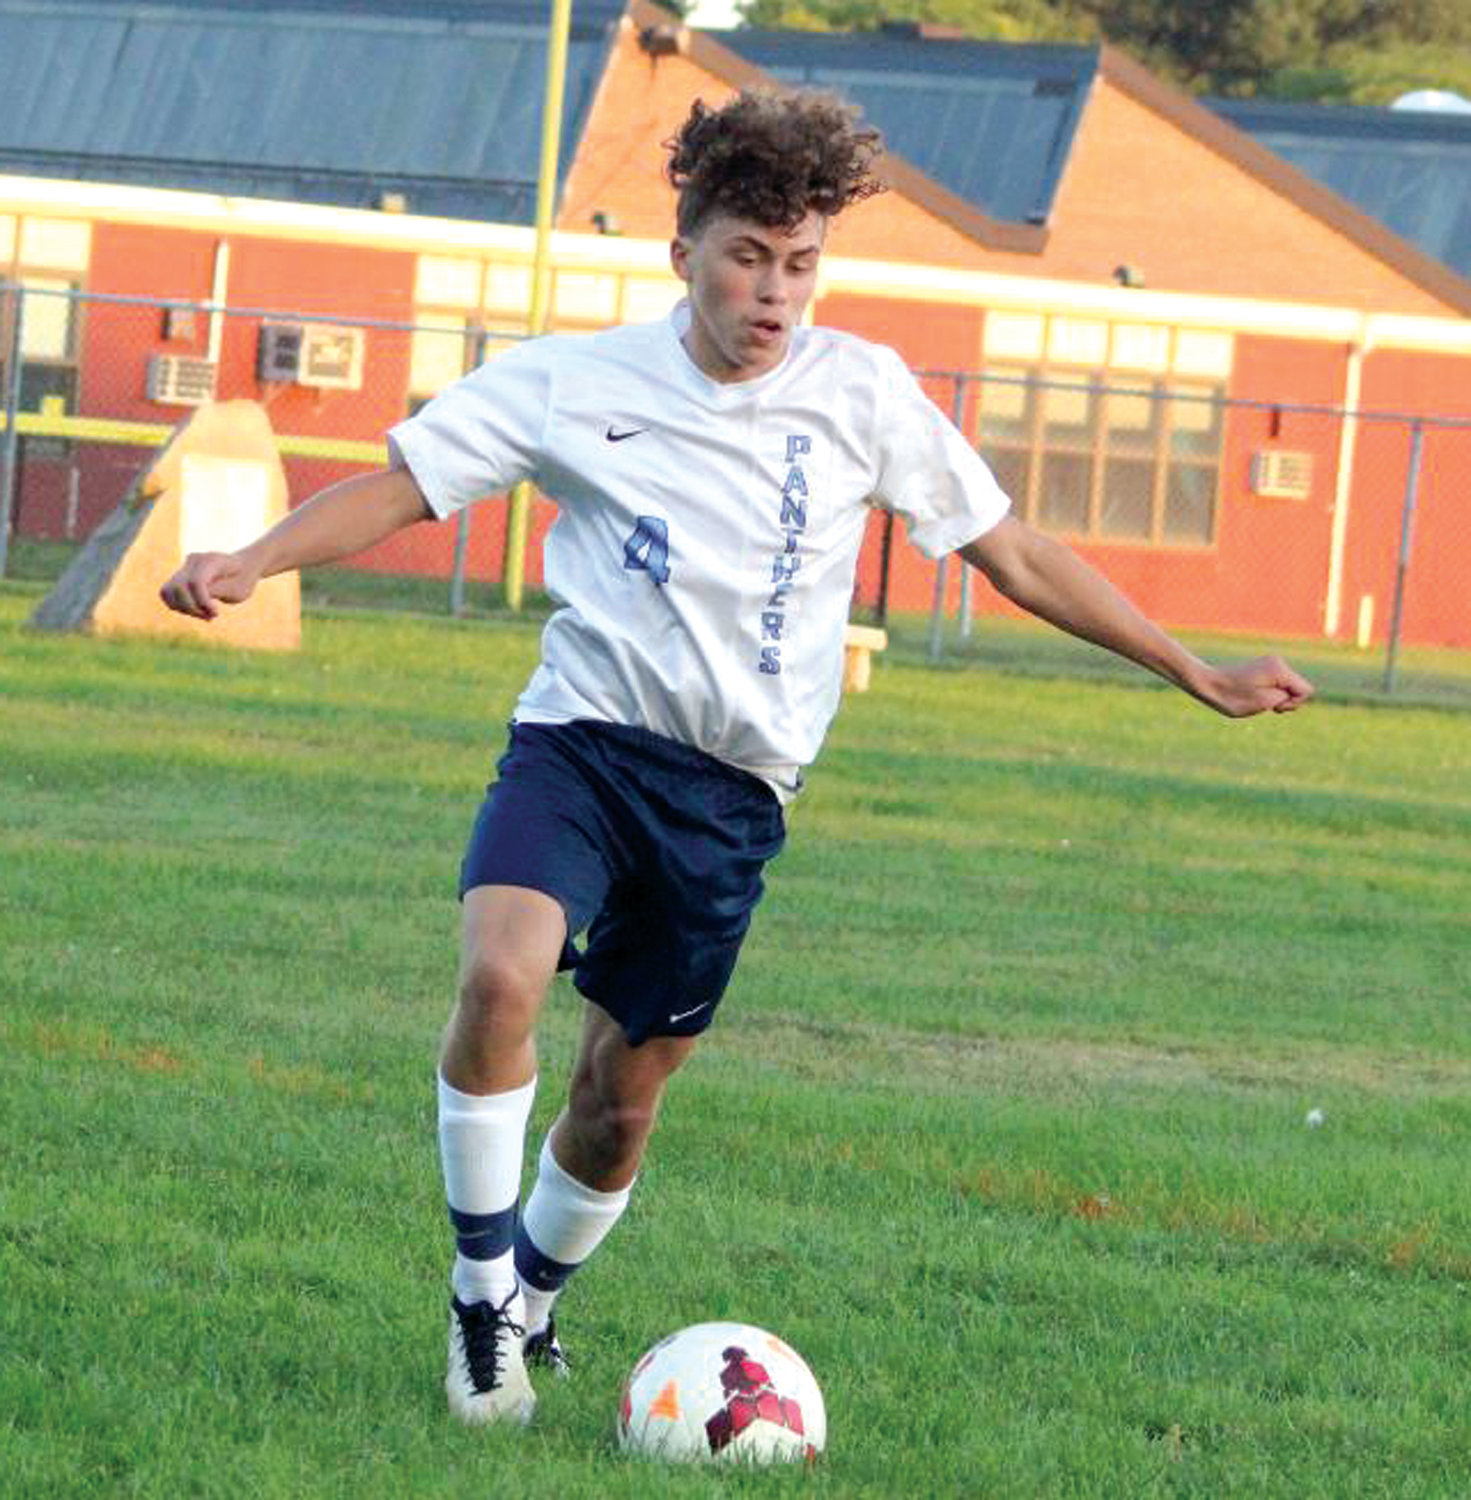 GETTING THE WIN: Johnston's Carlos Monterro dribbles the ball up the field against Toll Gate on Tuesday.